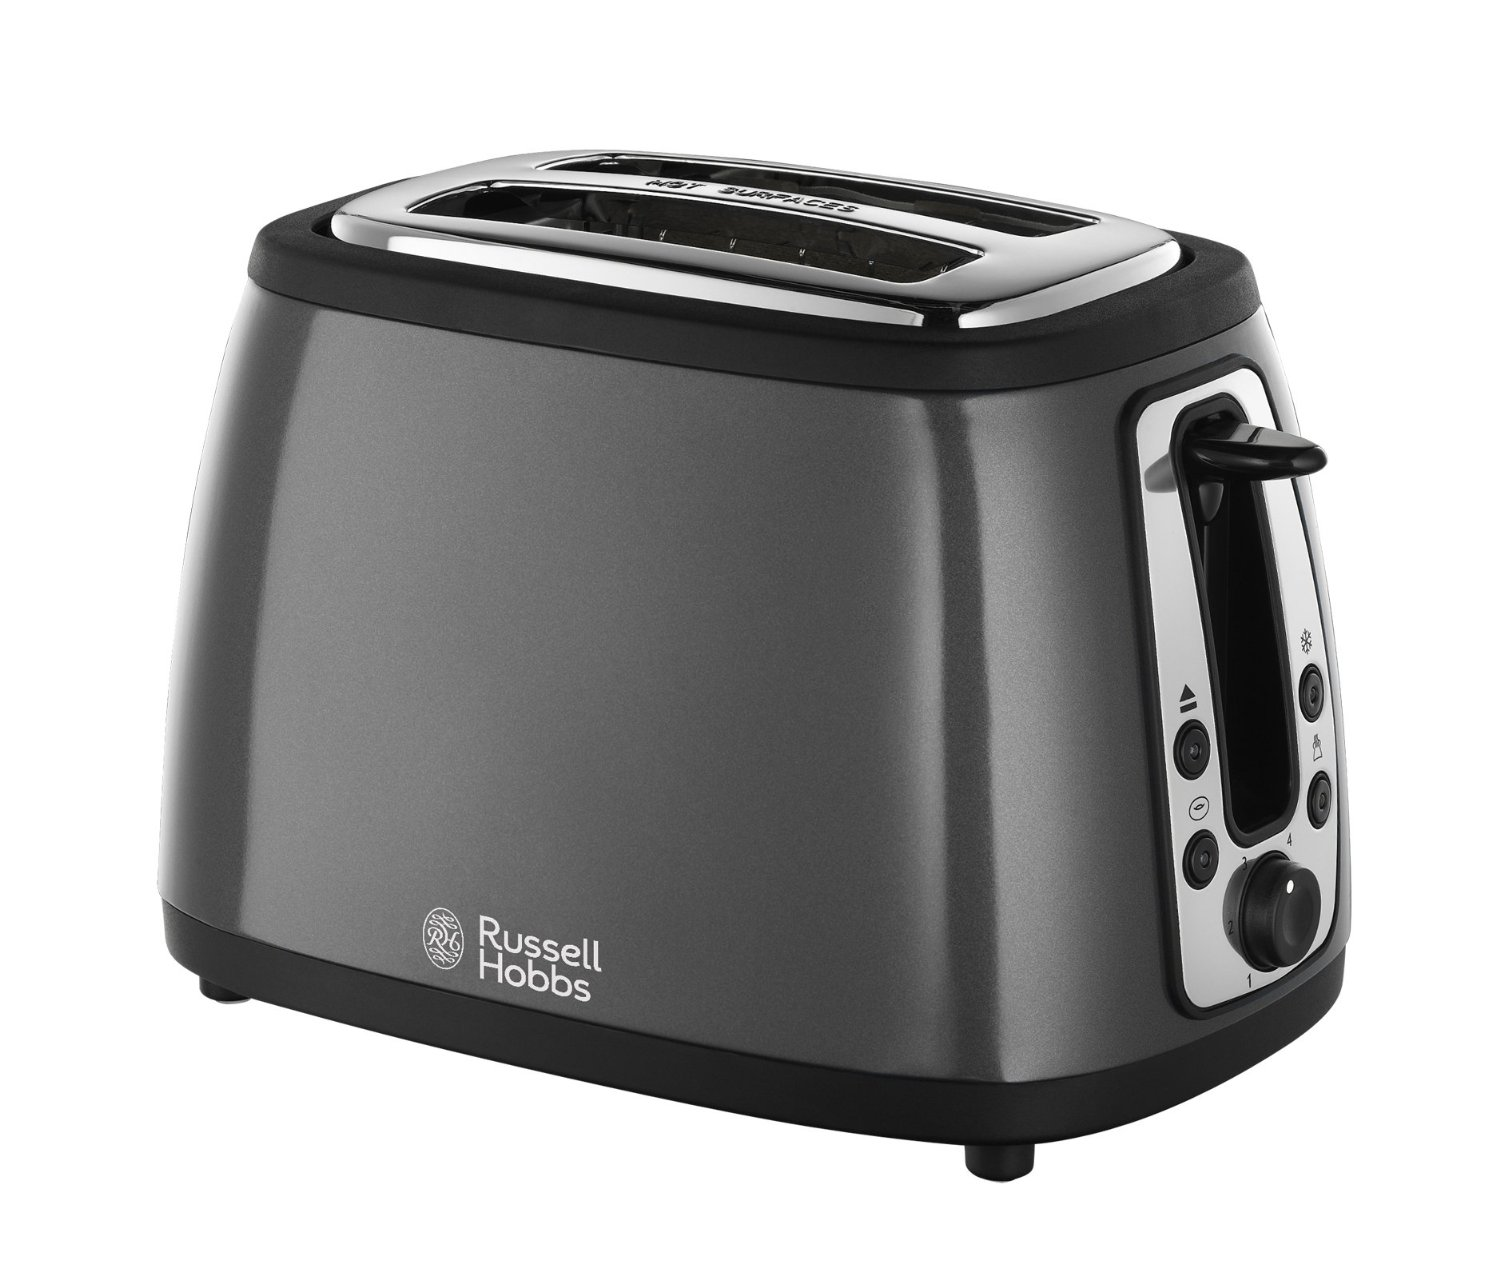 russell hobbs 19154 heritage 2 slice toaster metallic graphite grey new ebay. Black Bedroom Furniture Sets. Home Design Ideas